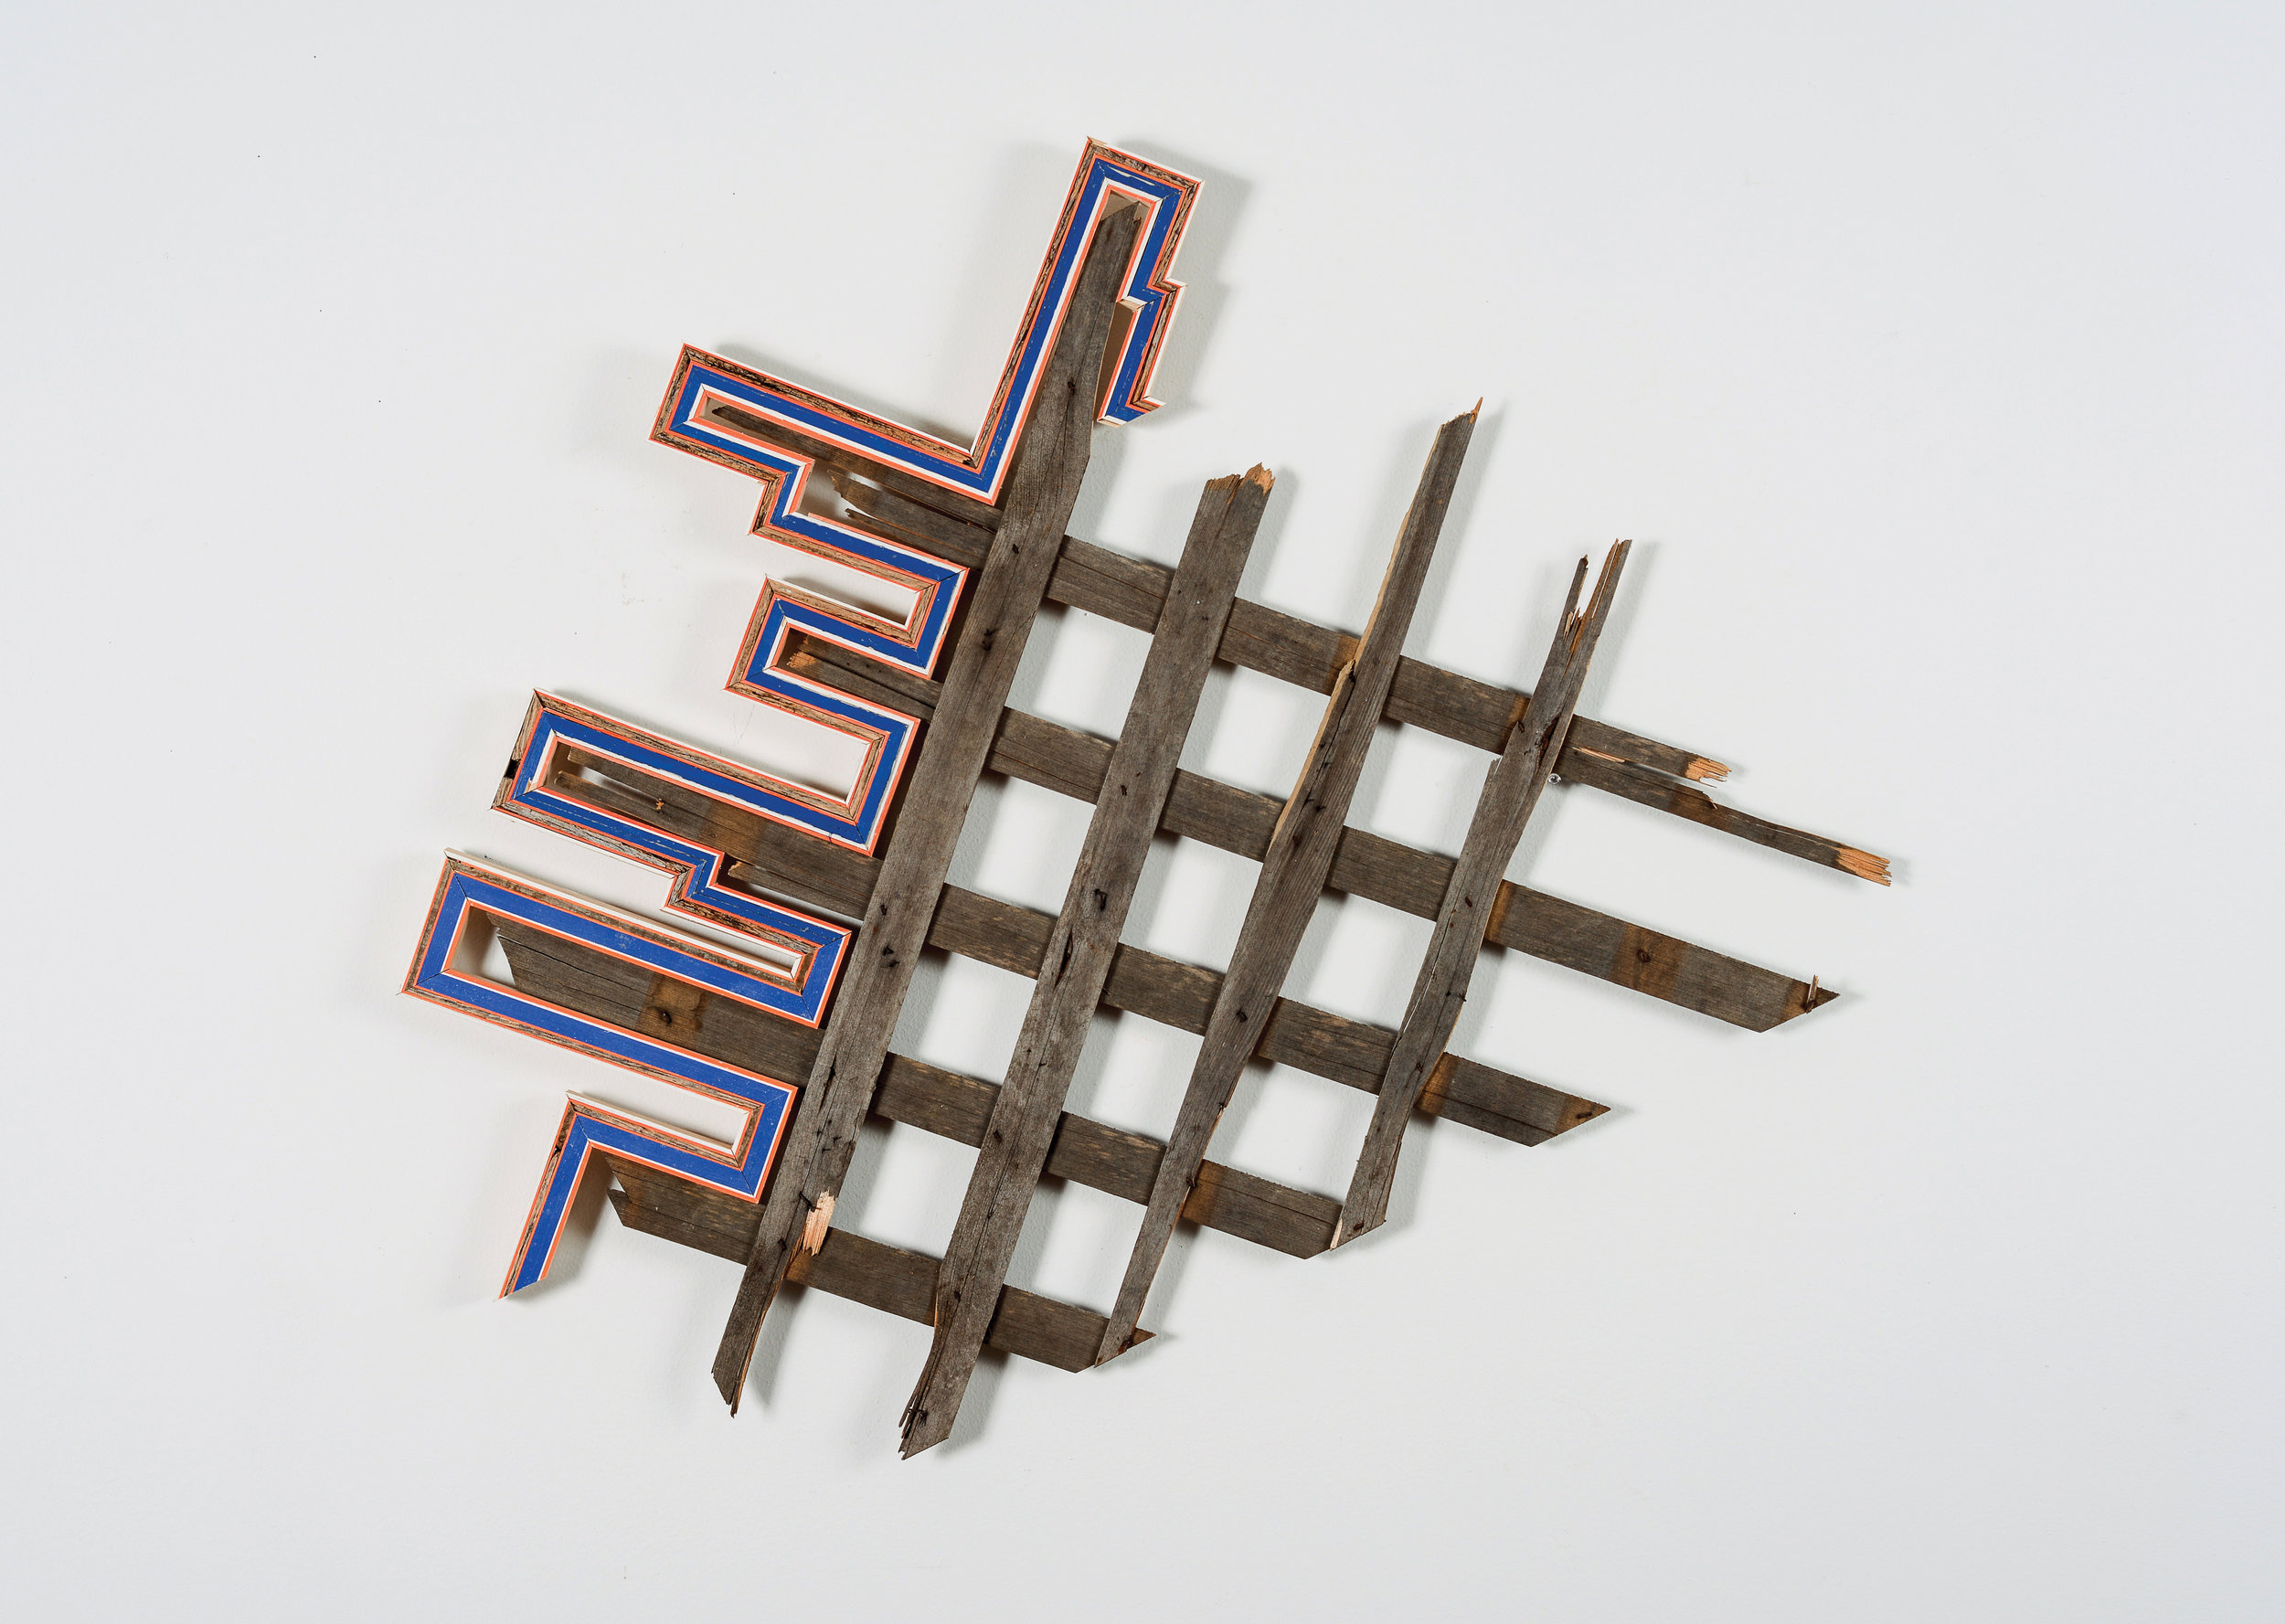 Broken Lattice  (Reedsburg, WI/ New Orleans, LA), 2013  Broken wood lattice collected from streetsof New Orleans, wood collected from decaying ruraloutbuildings in Reedsburg WI, painted wood, nails, screws, 30 x 28 inches